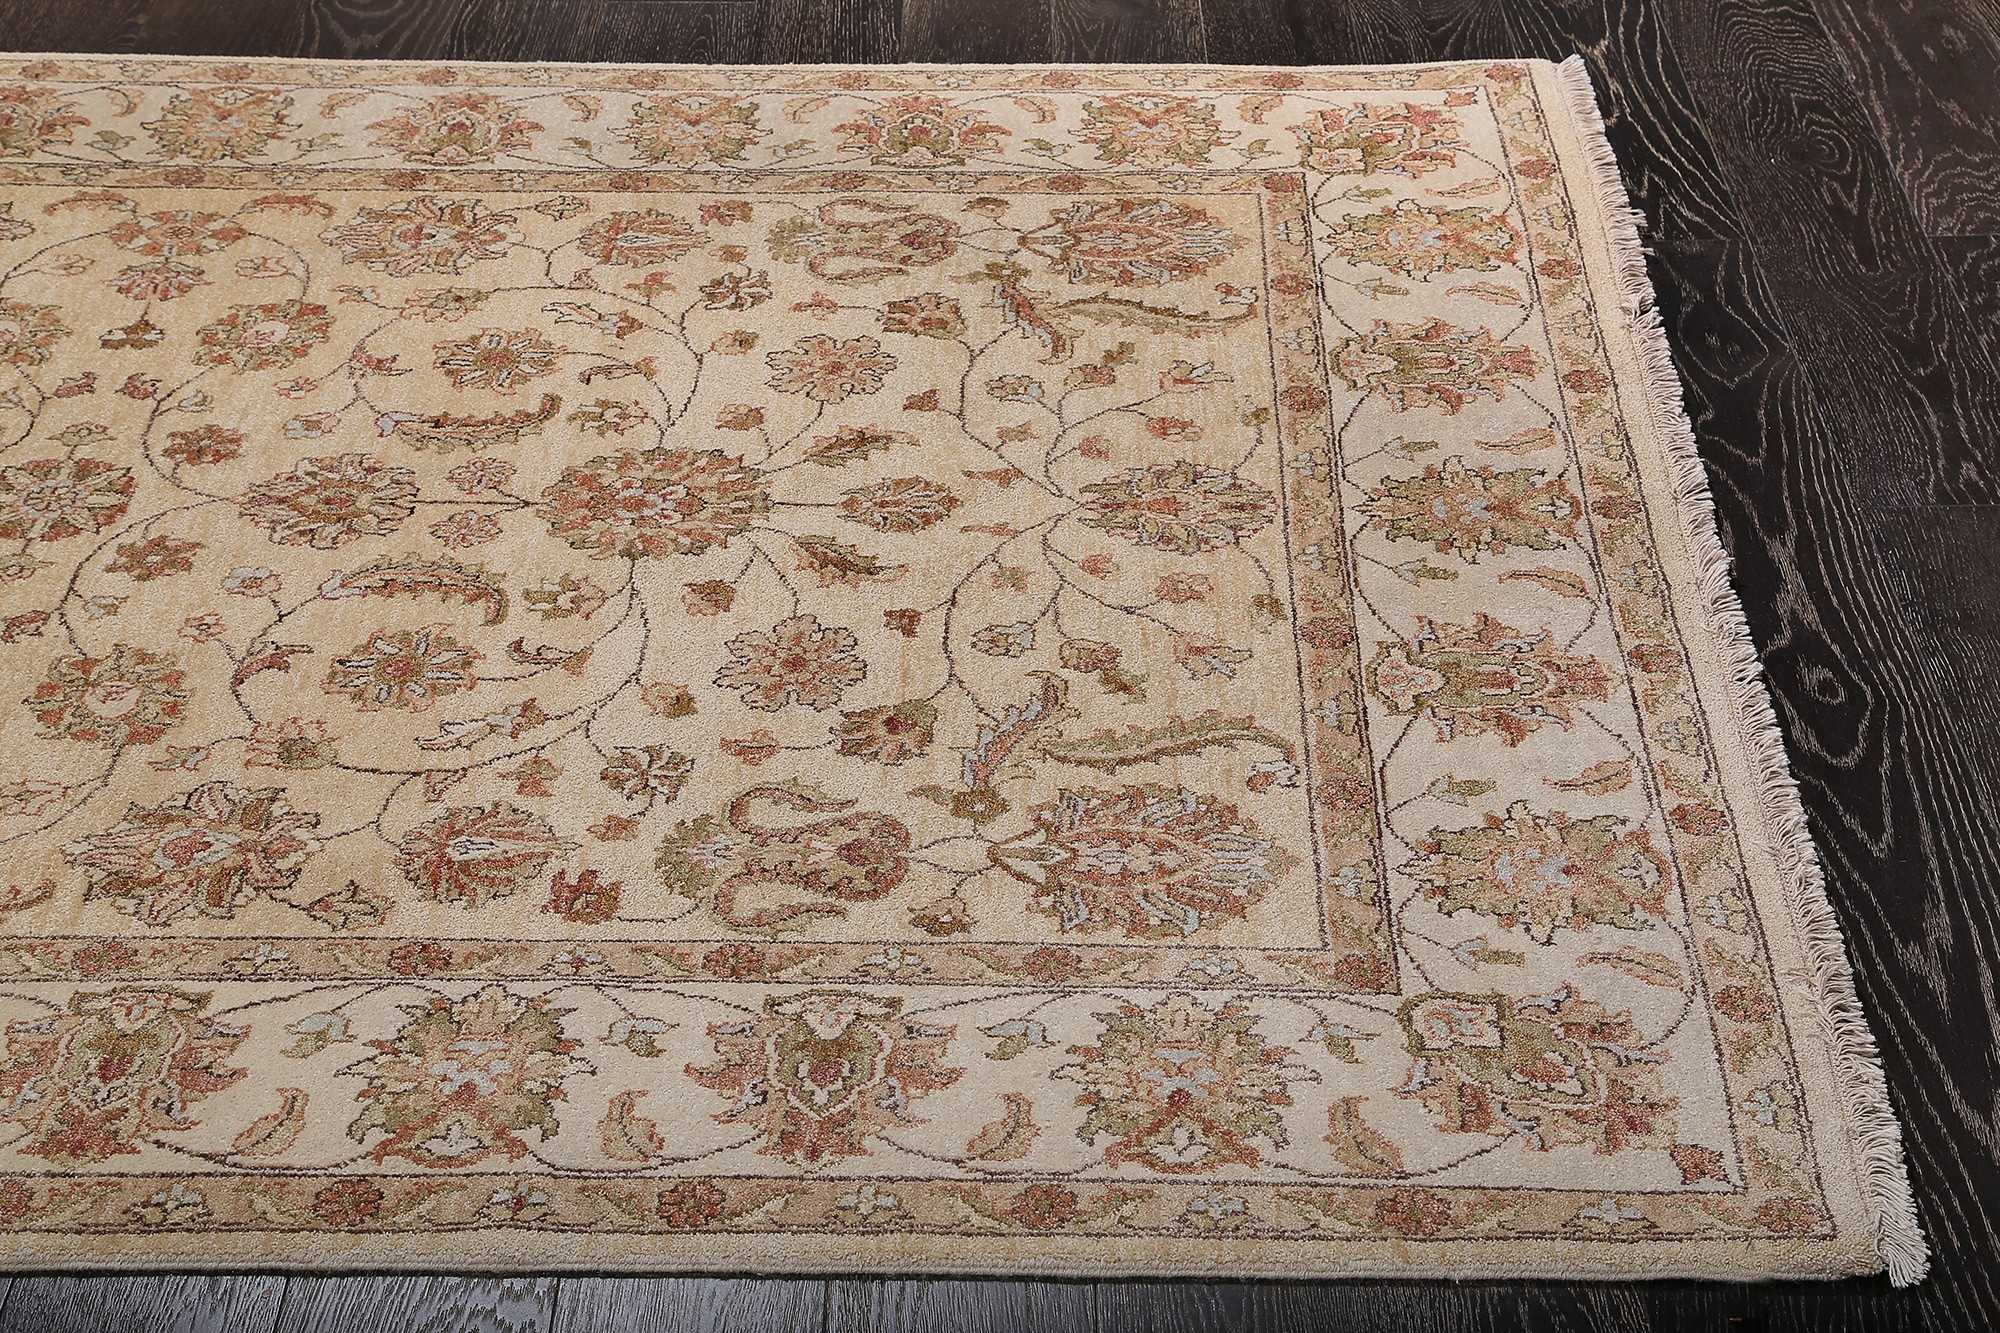 Hand Knotted Wool Rug Roselawnlutheran Pertaining To Persian Style Wool Rugs (View 15 of 15)